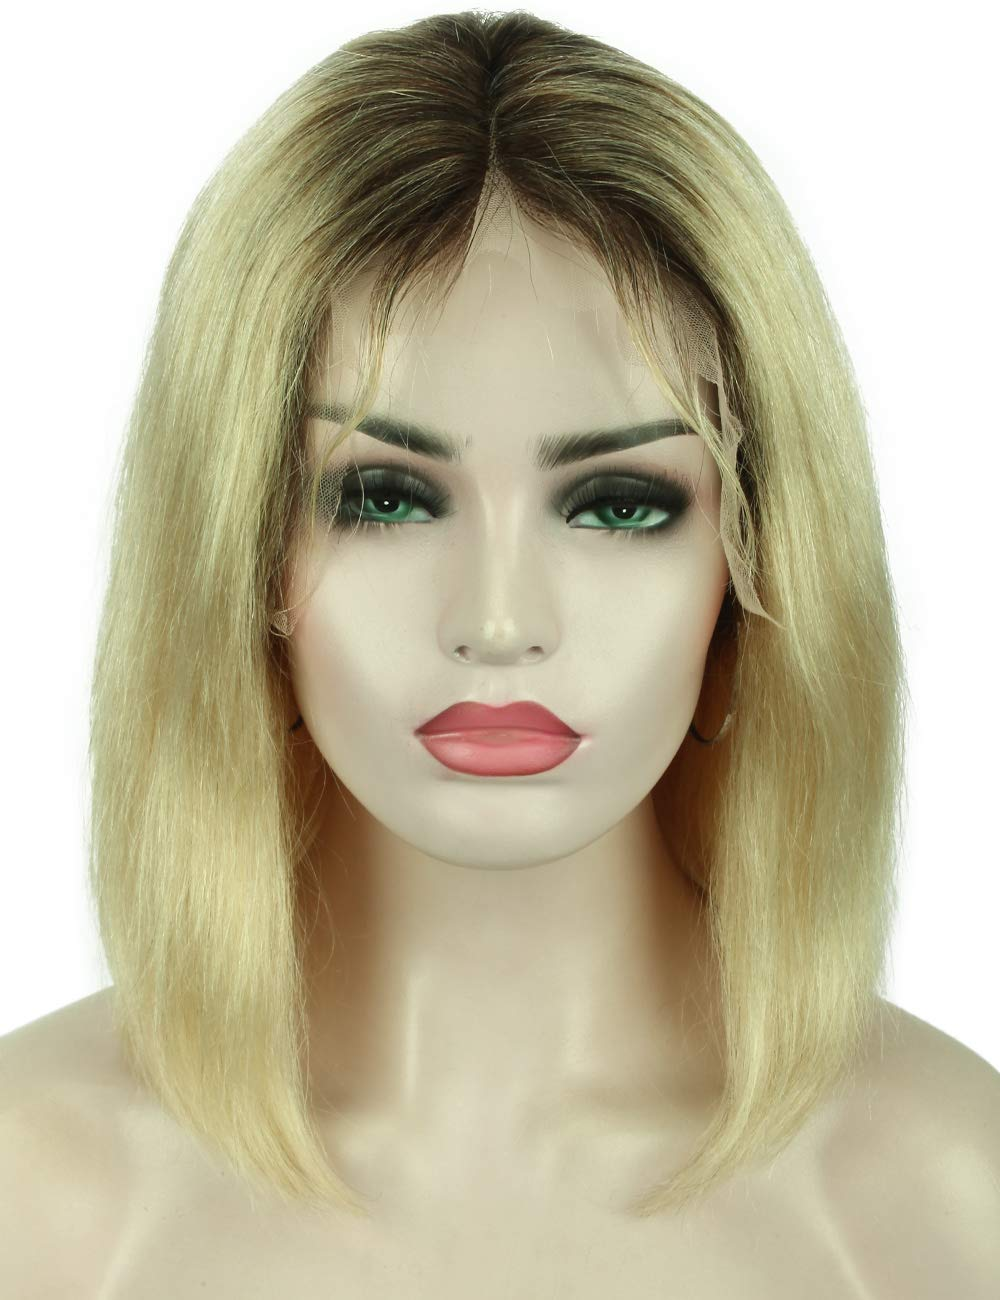 Beauart 13x6 Lace Front Wigs Human Hair Ombre Blonde Short Bob Wigs with Pre Plucked Hairline Free Parting Brazilian Human Hair Wigs with Baby Hair for White Women